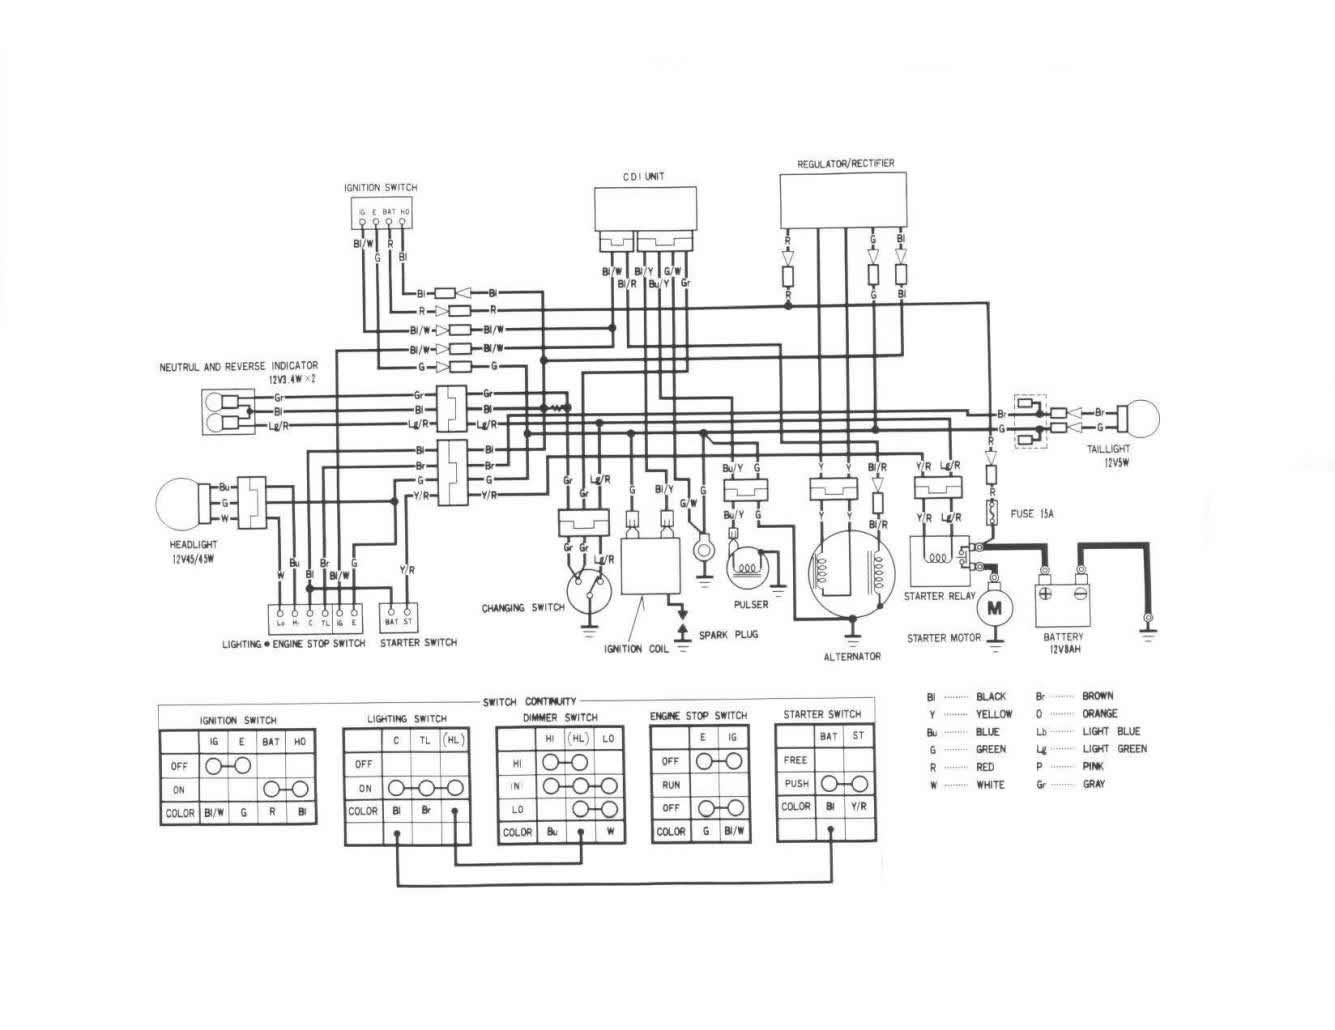 hight resolution of kawasaki bayou 400 wiring diagram wiring diagram schematics 2006 silverado bcm diagram kawasaki atv 400 4x4 wiring diagram